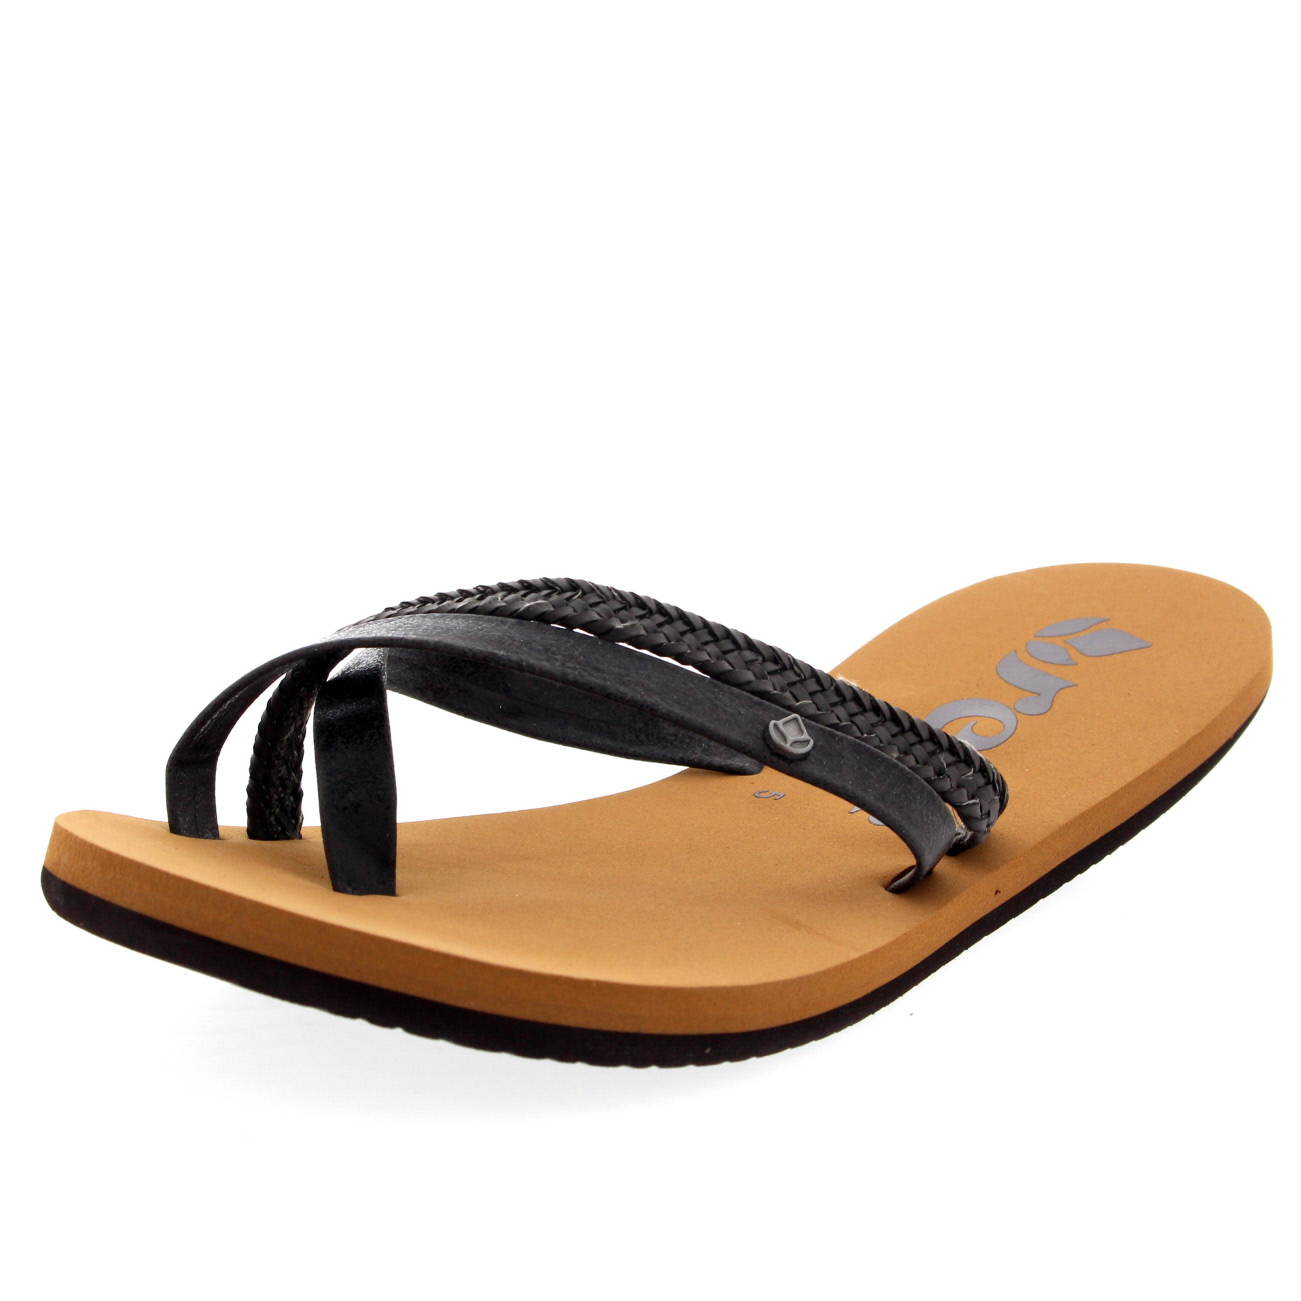 Black sandals holiday - Womens Reef O Contrare Lx Holiday Beach Summer Lightweight Black Sandals Uk 3 8